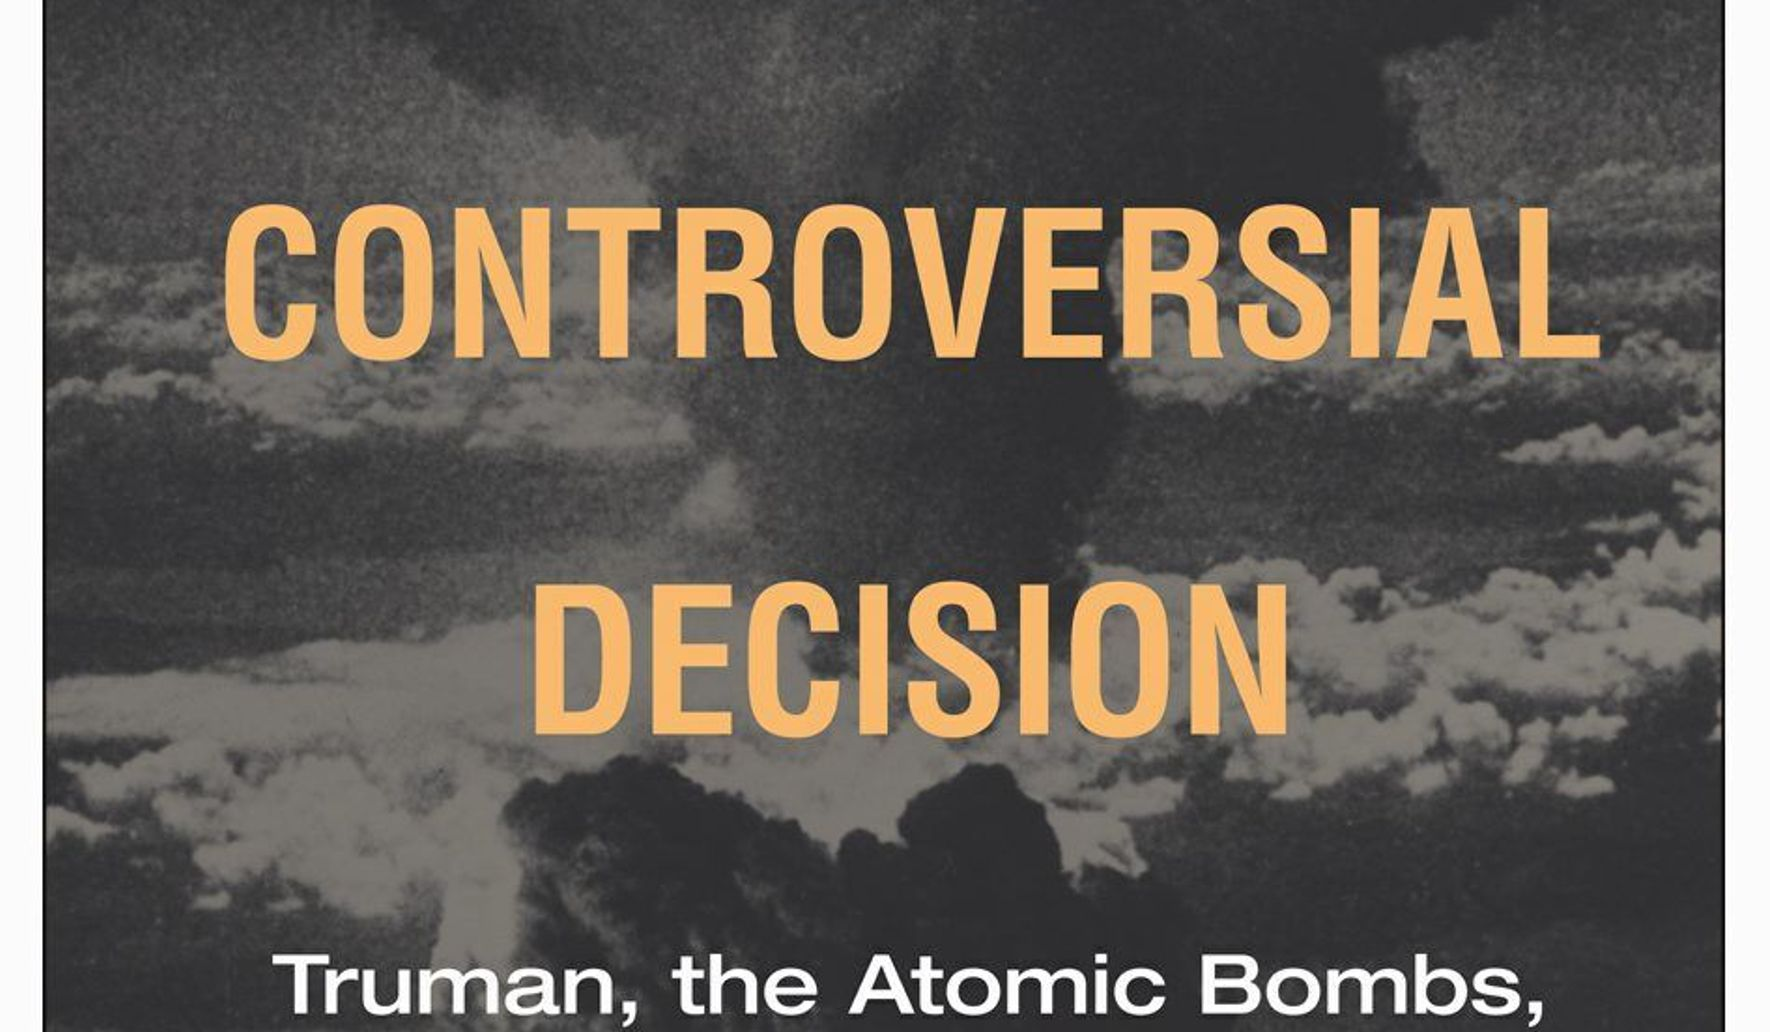 BOOK REVIEW: 'The Most Controversial Decision' - Washington